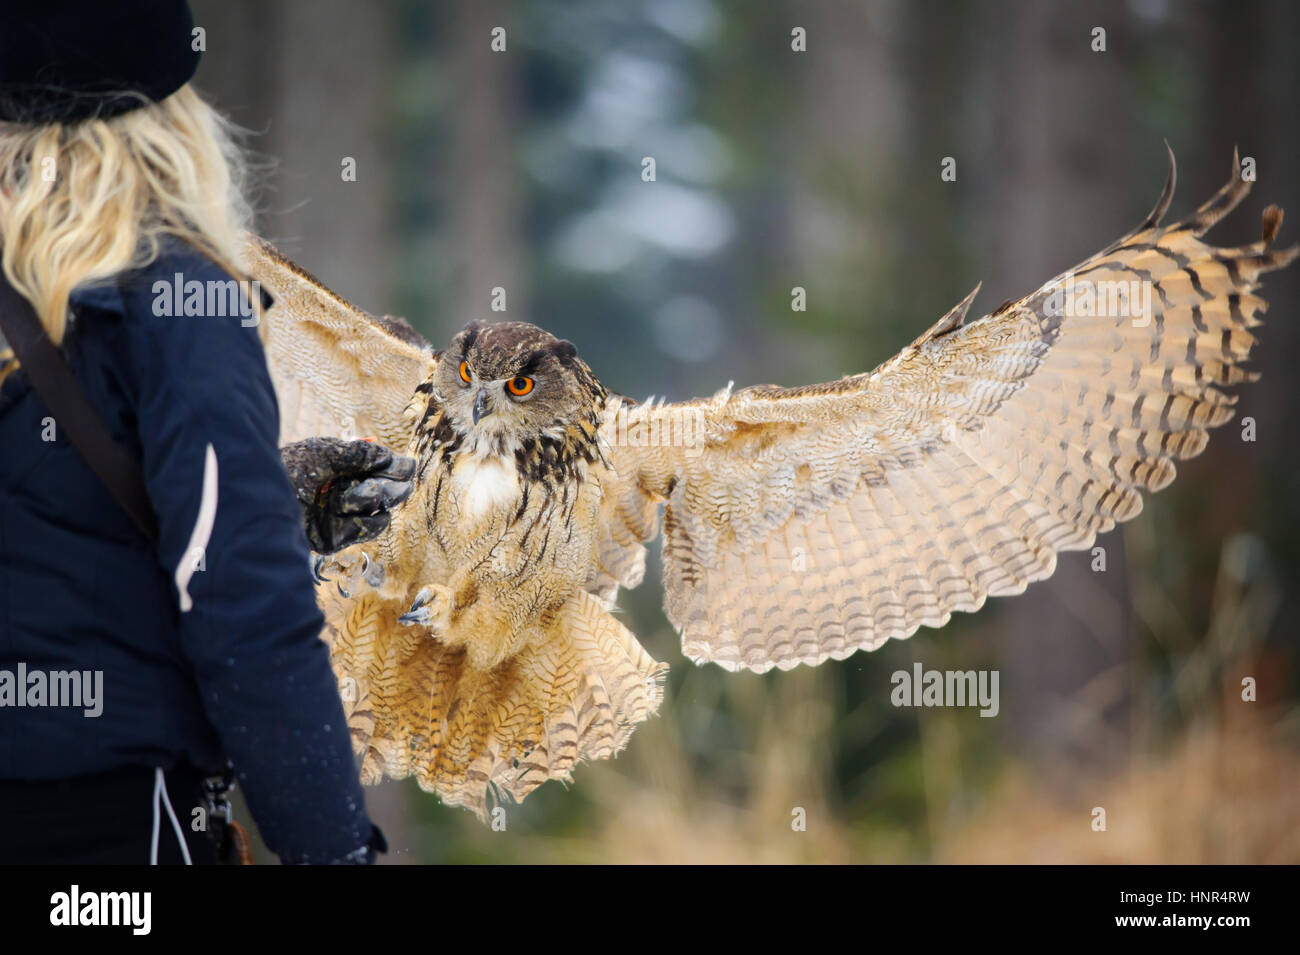 Falconer girl with blong hair from back with gauntlet and landing flying Eurasian Eagle Owl winter forest - Stock Image